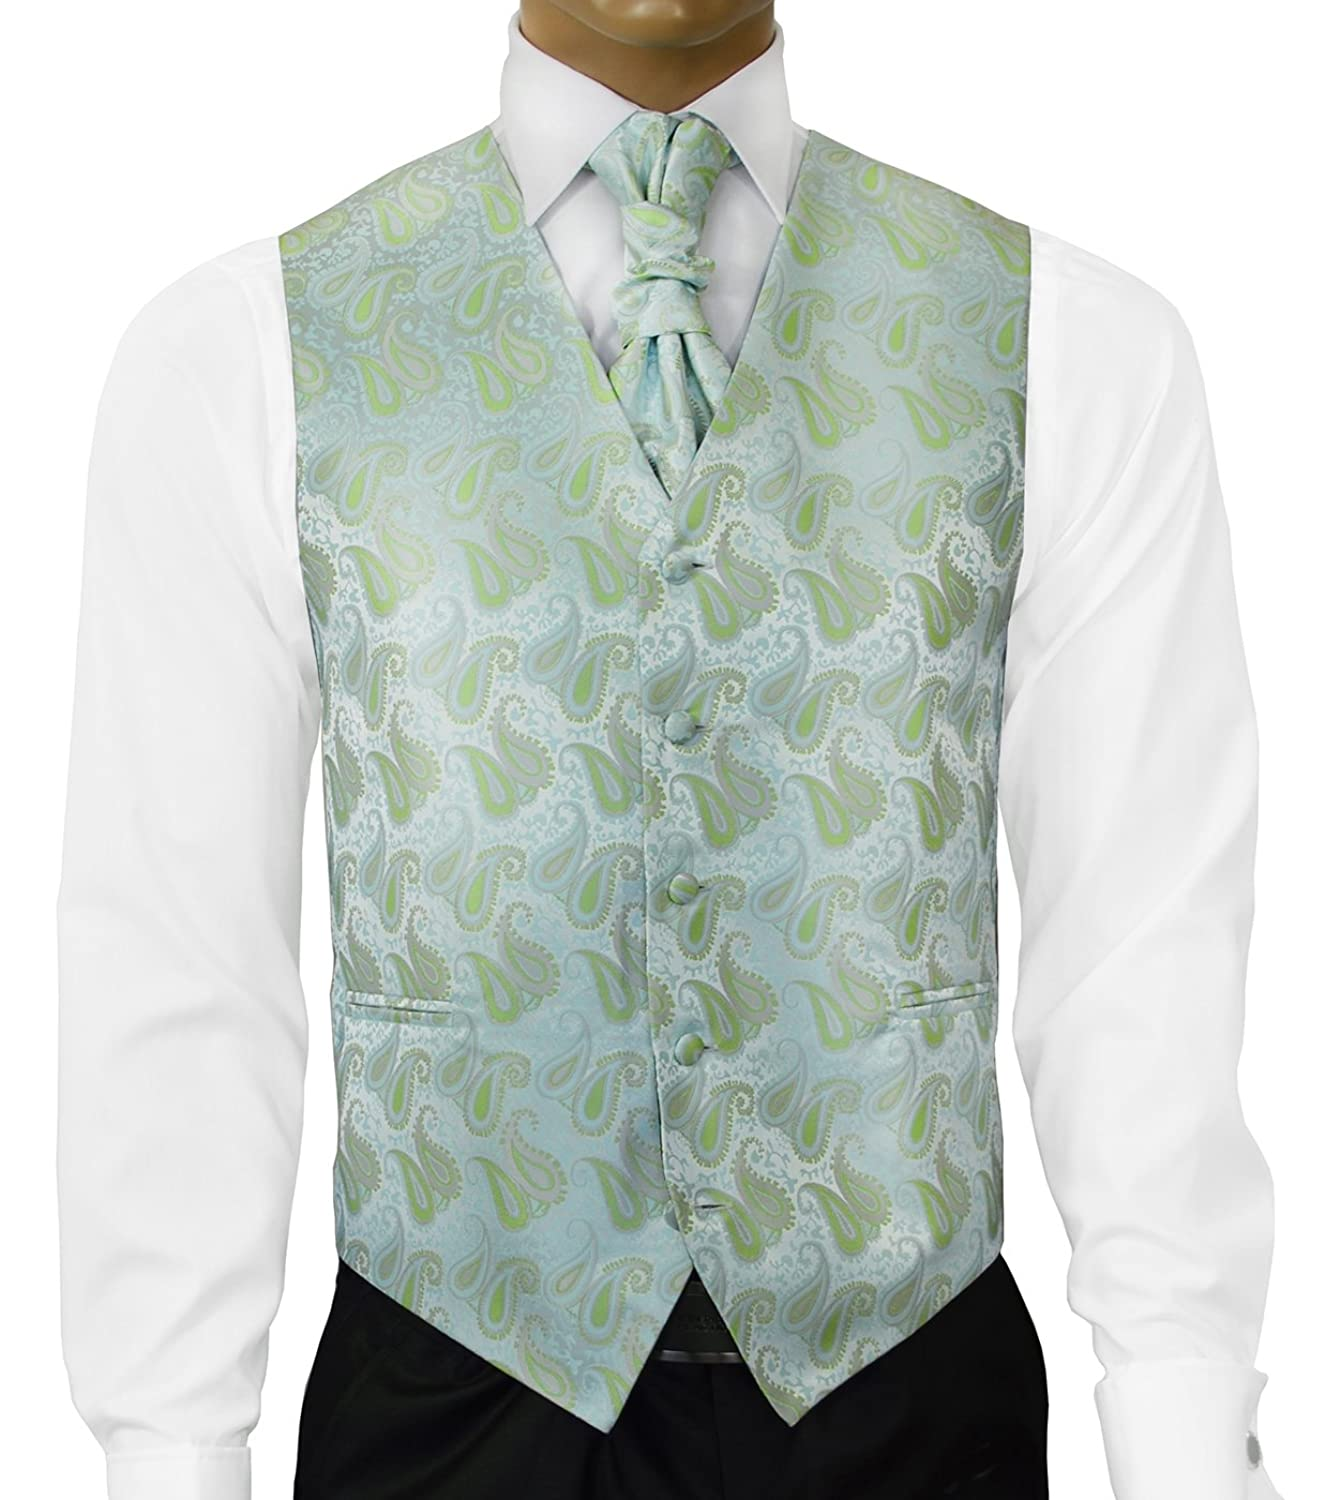 Paul Malone Morning Mist Green Wedding Vest with Tie, Cravat, Pocket ...